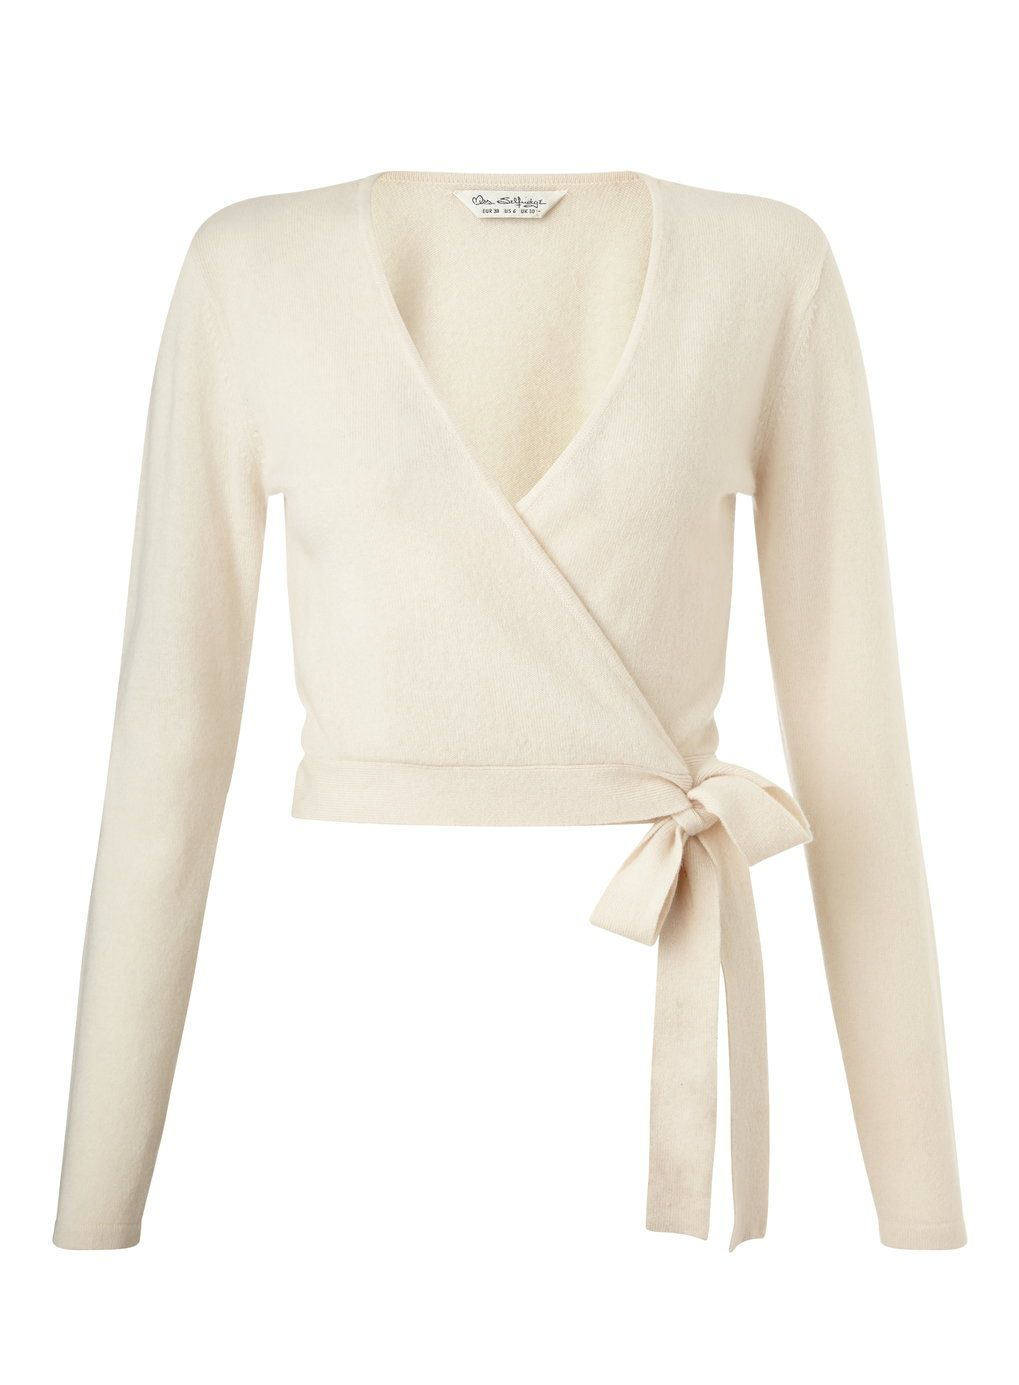 Cream Cashmere Wrap Cardi - Miss Selfridge | clothes | Pinterest ...